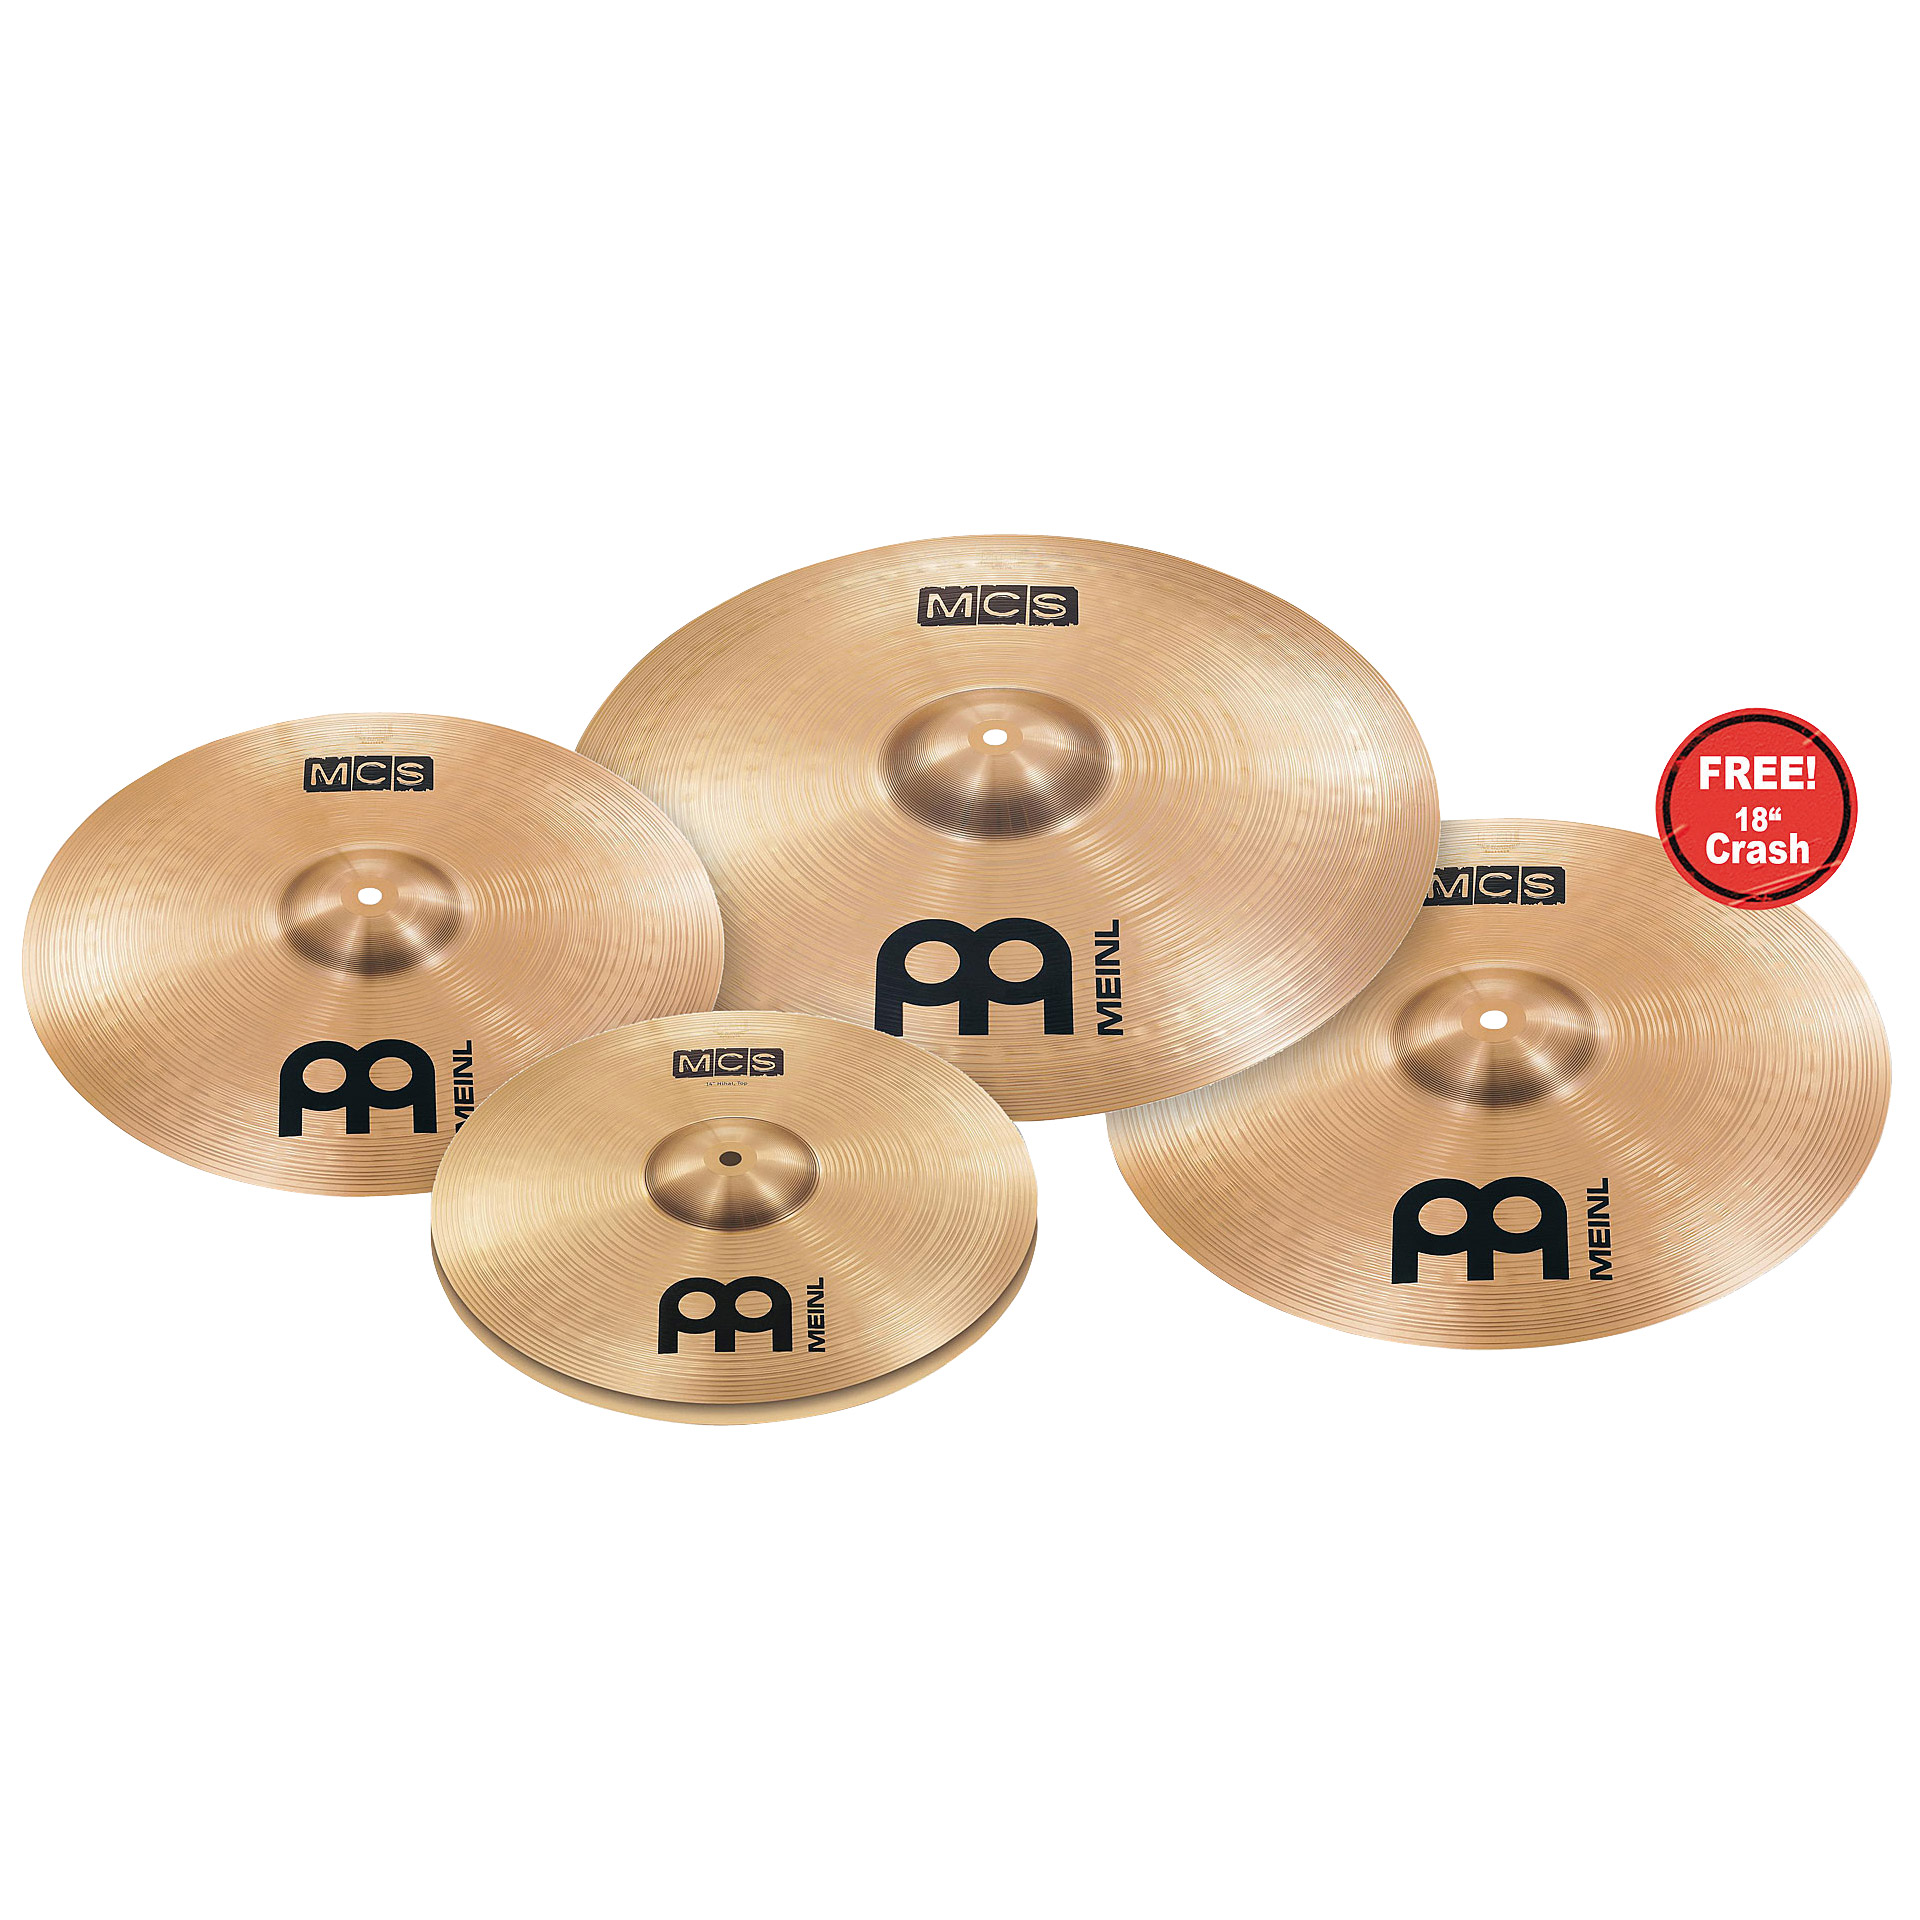 meinl mcs complete cymbal set up 18 crash cymbal set. Black Bedroom Furniture Sets. Home Design Ideas